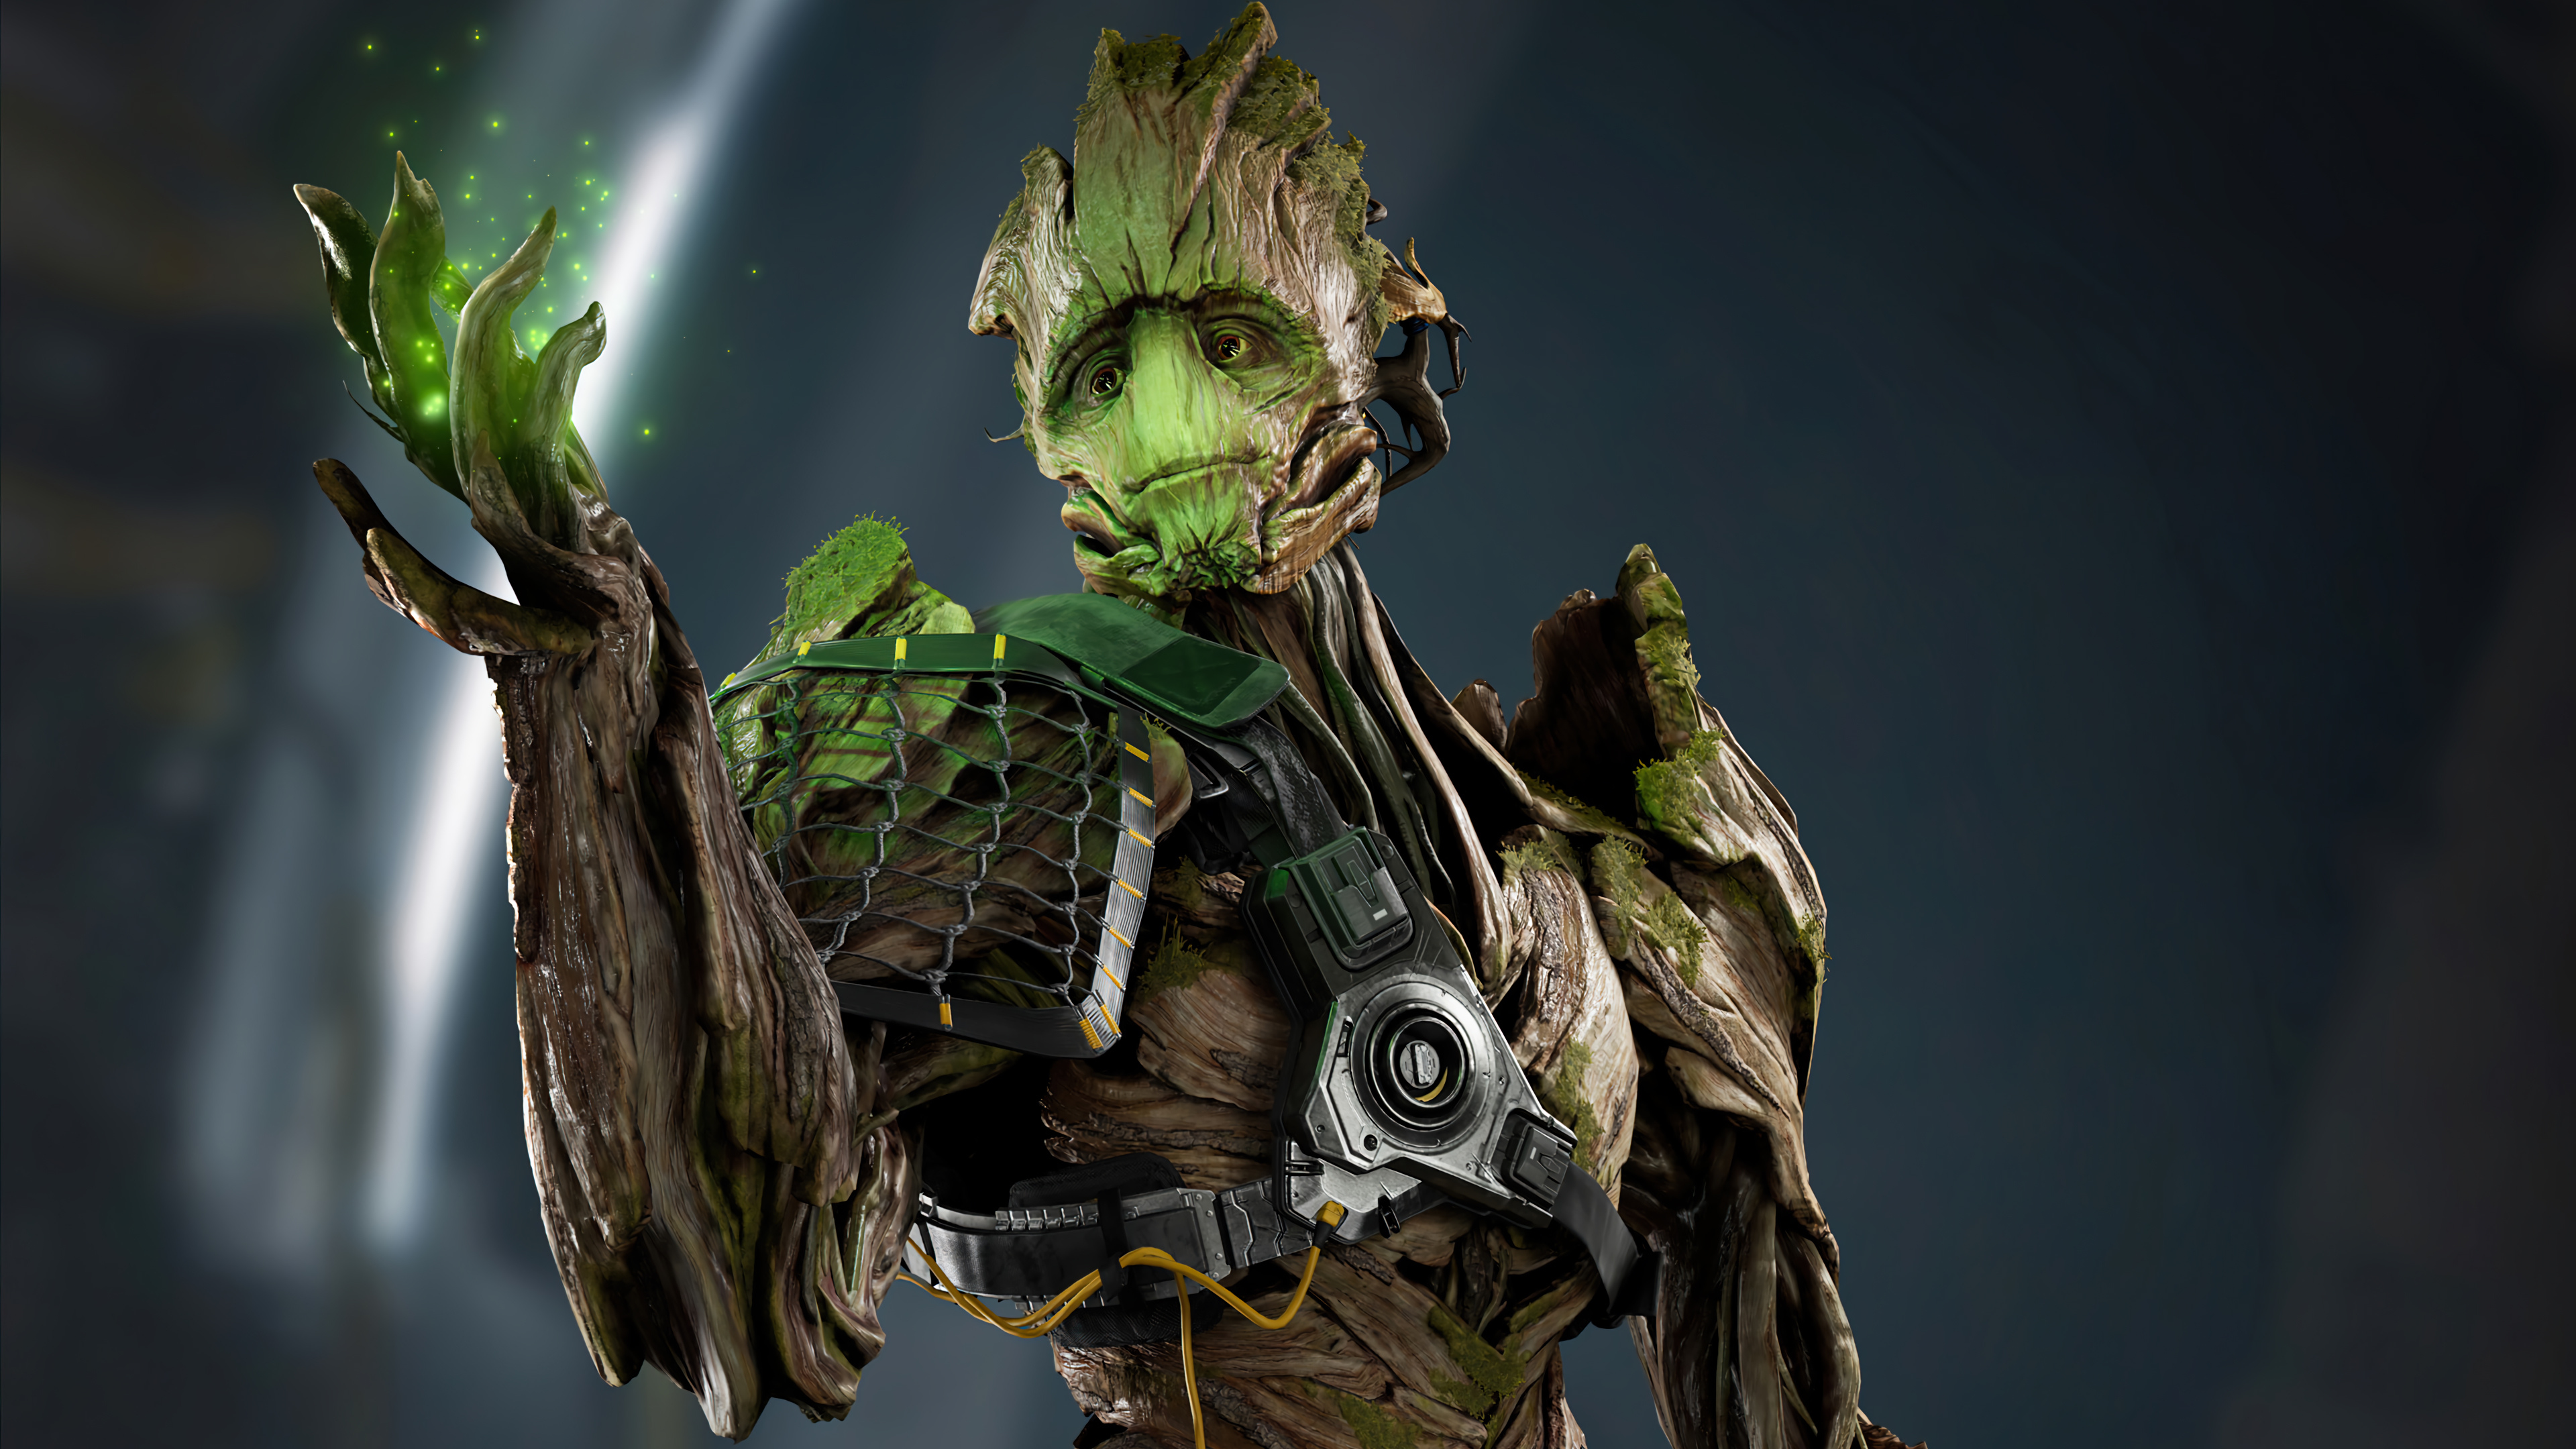 Wallpaper Groot Marvels Guardians of the galaxy